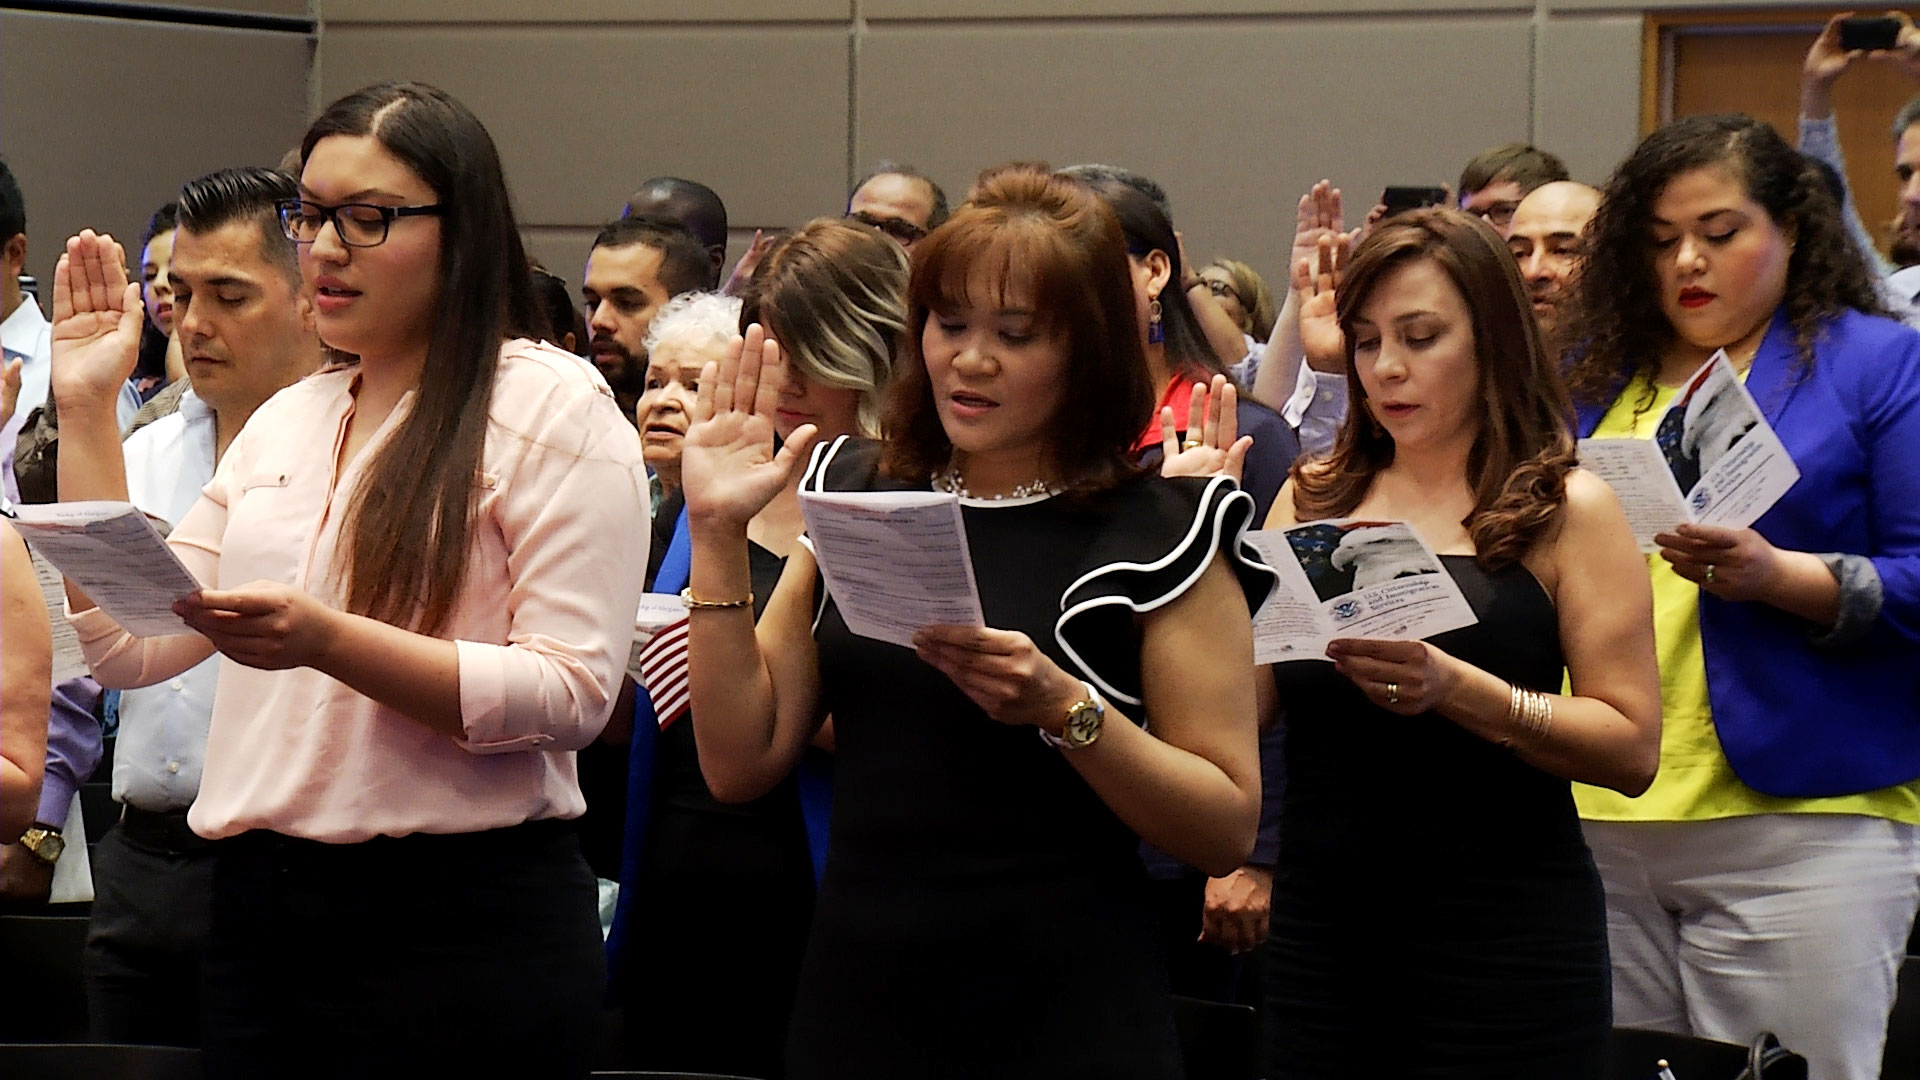 Immigrants take their Oath of Allegiance at a naturalization ceremony held at the U.S. District Court in Tucson on June 21, 2019.